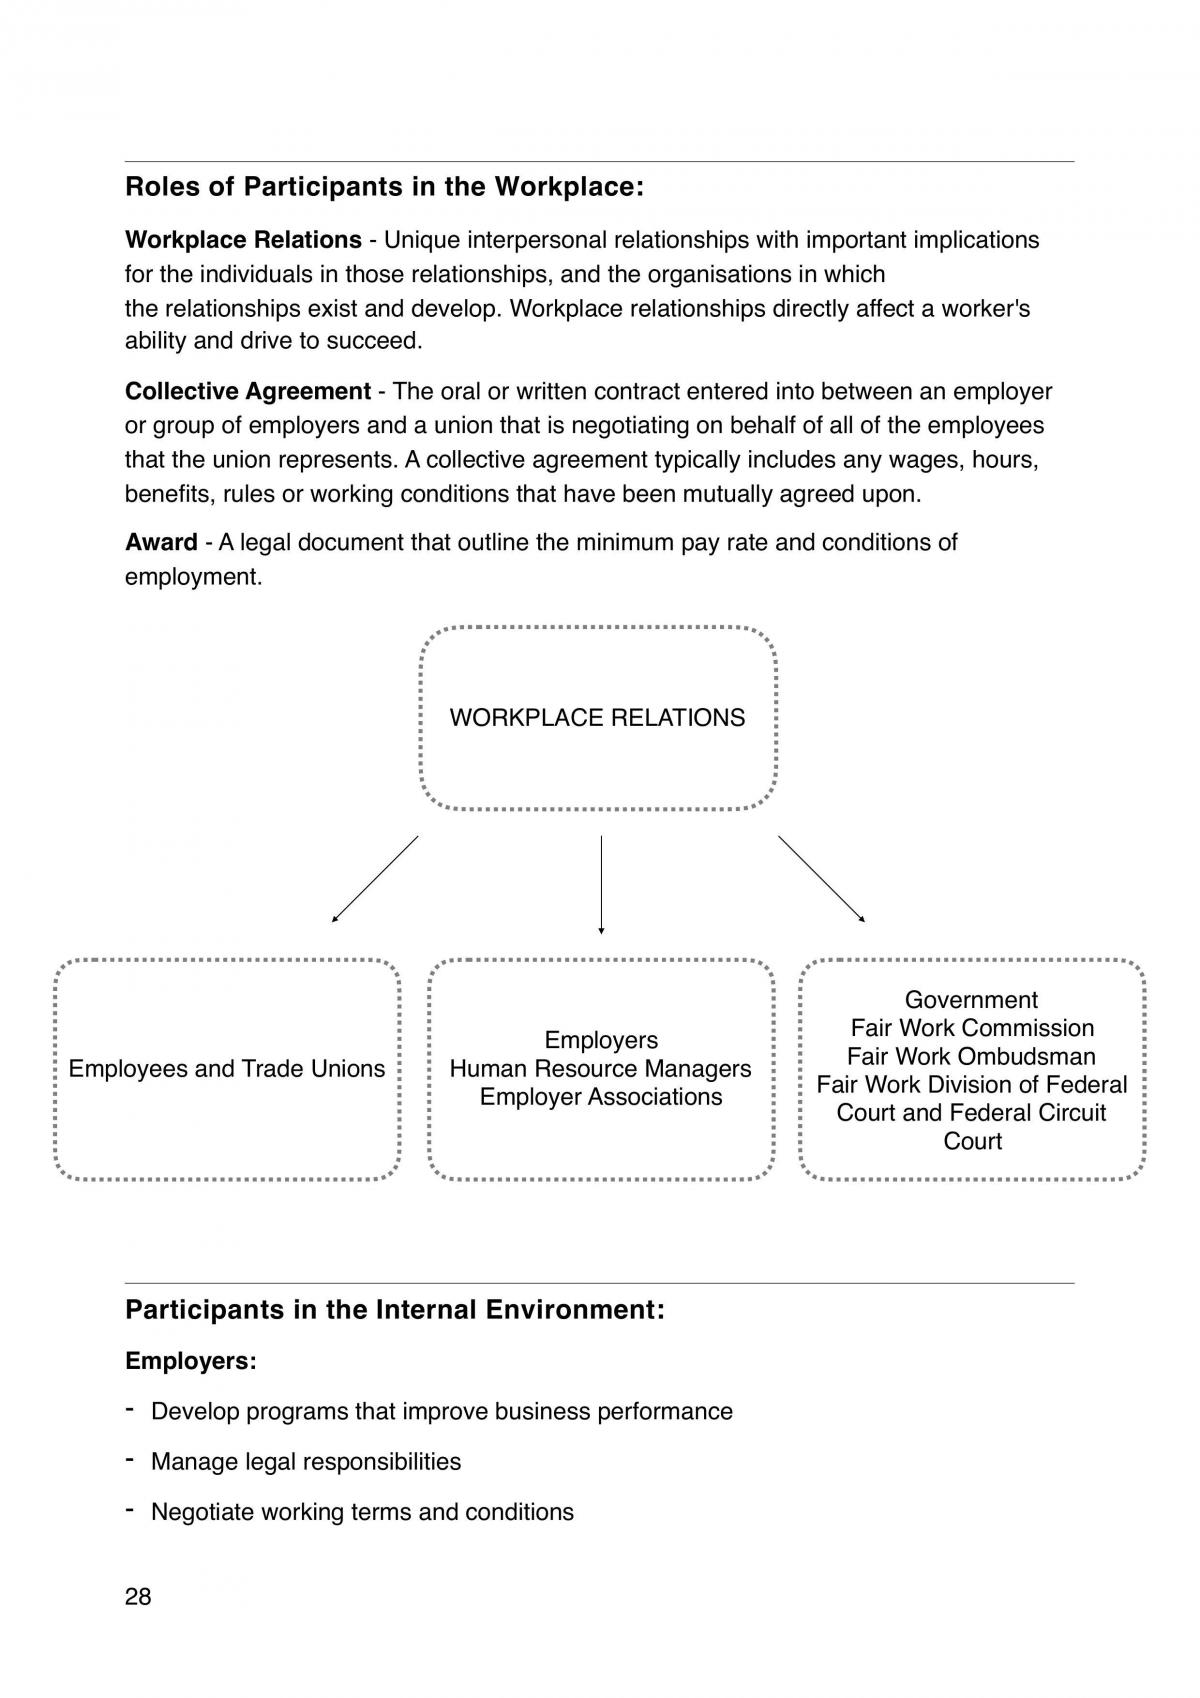 MGT1FOX - Foundation of Management notes - Page 28